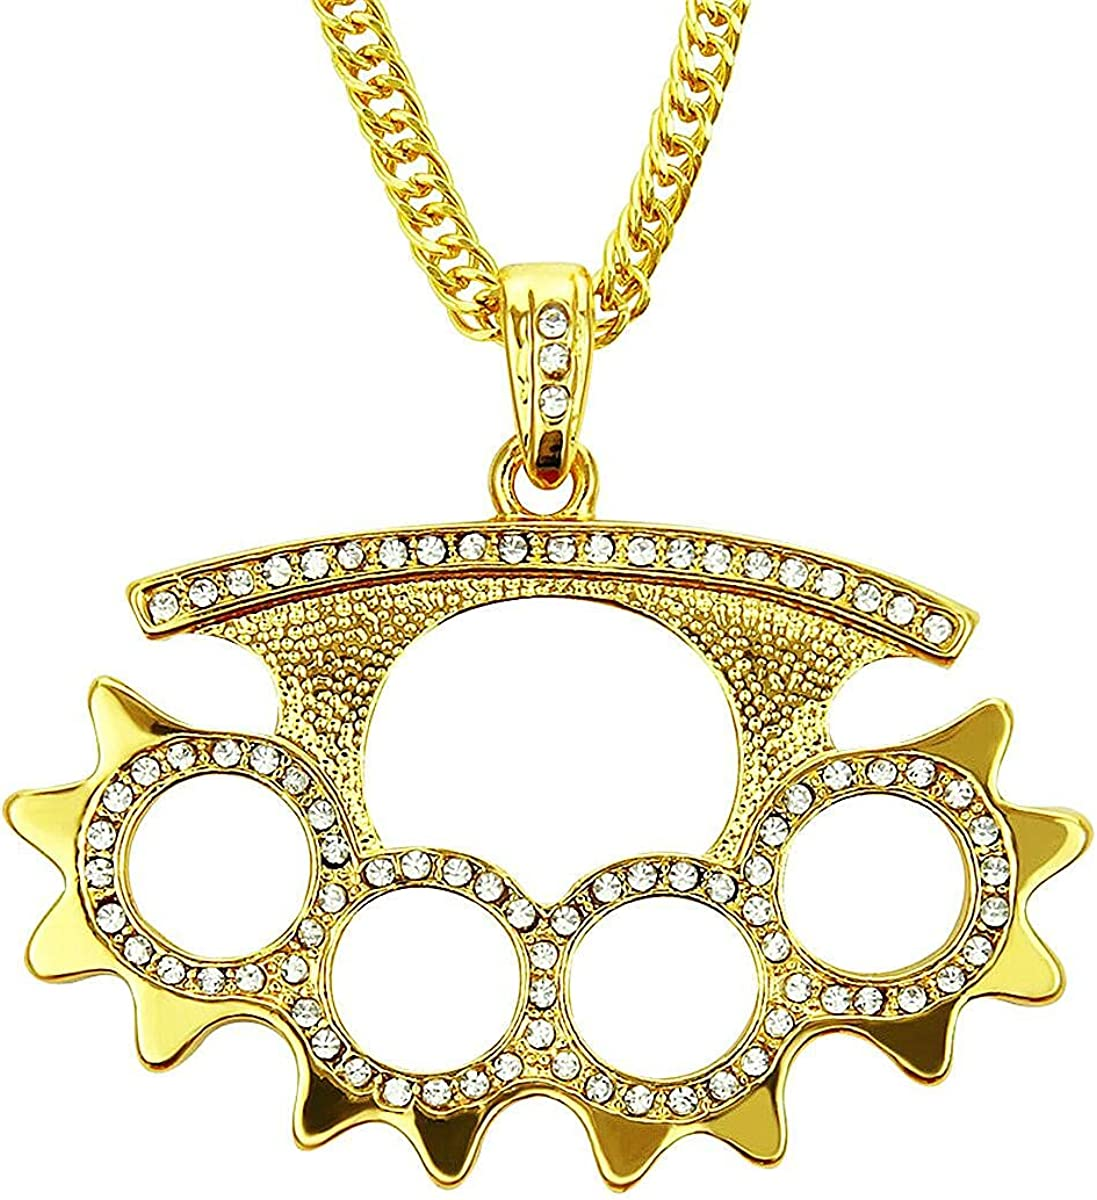 Ouvia Iced Out Chain Gears Pendant Necklace Army Military Style Hip Hop Iced Out Chain Rap Punk Rock Clubs Disco Diamond Bling Halloween Cosplay Pennywise Costume boys jewelry Cuban Link chain for men